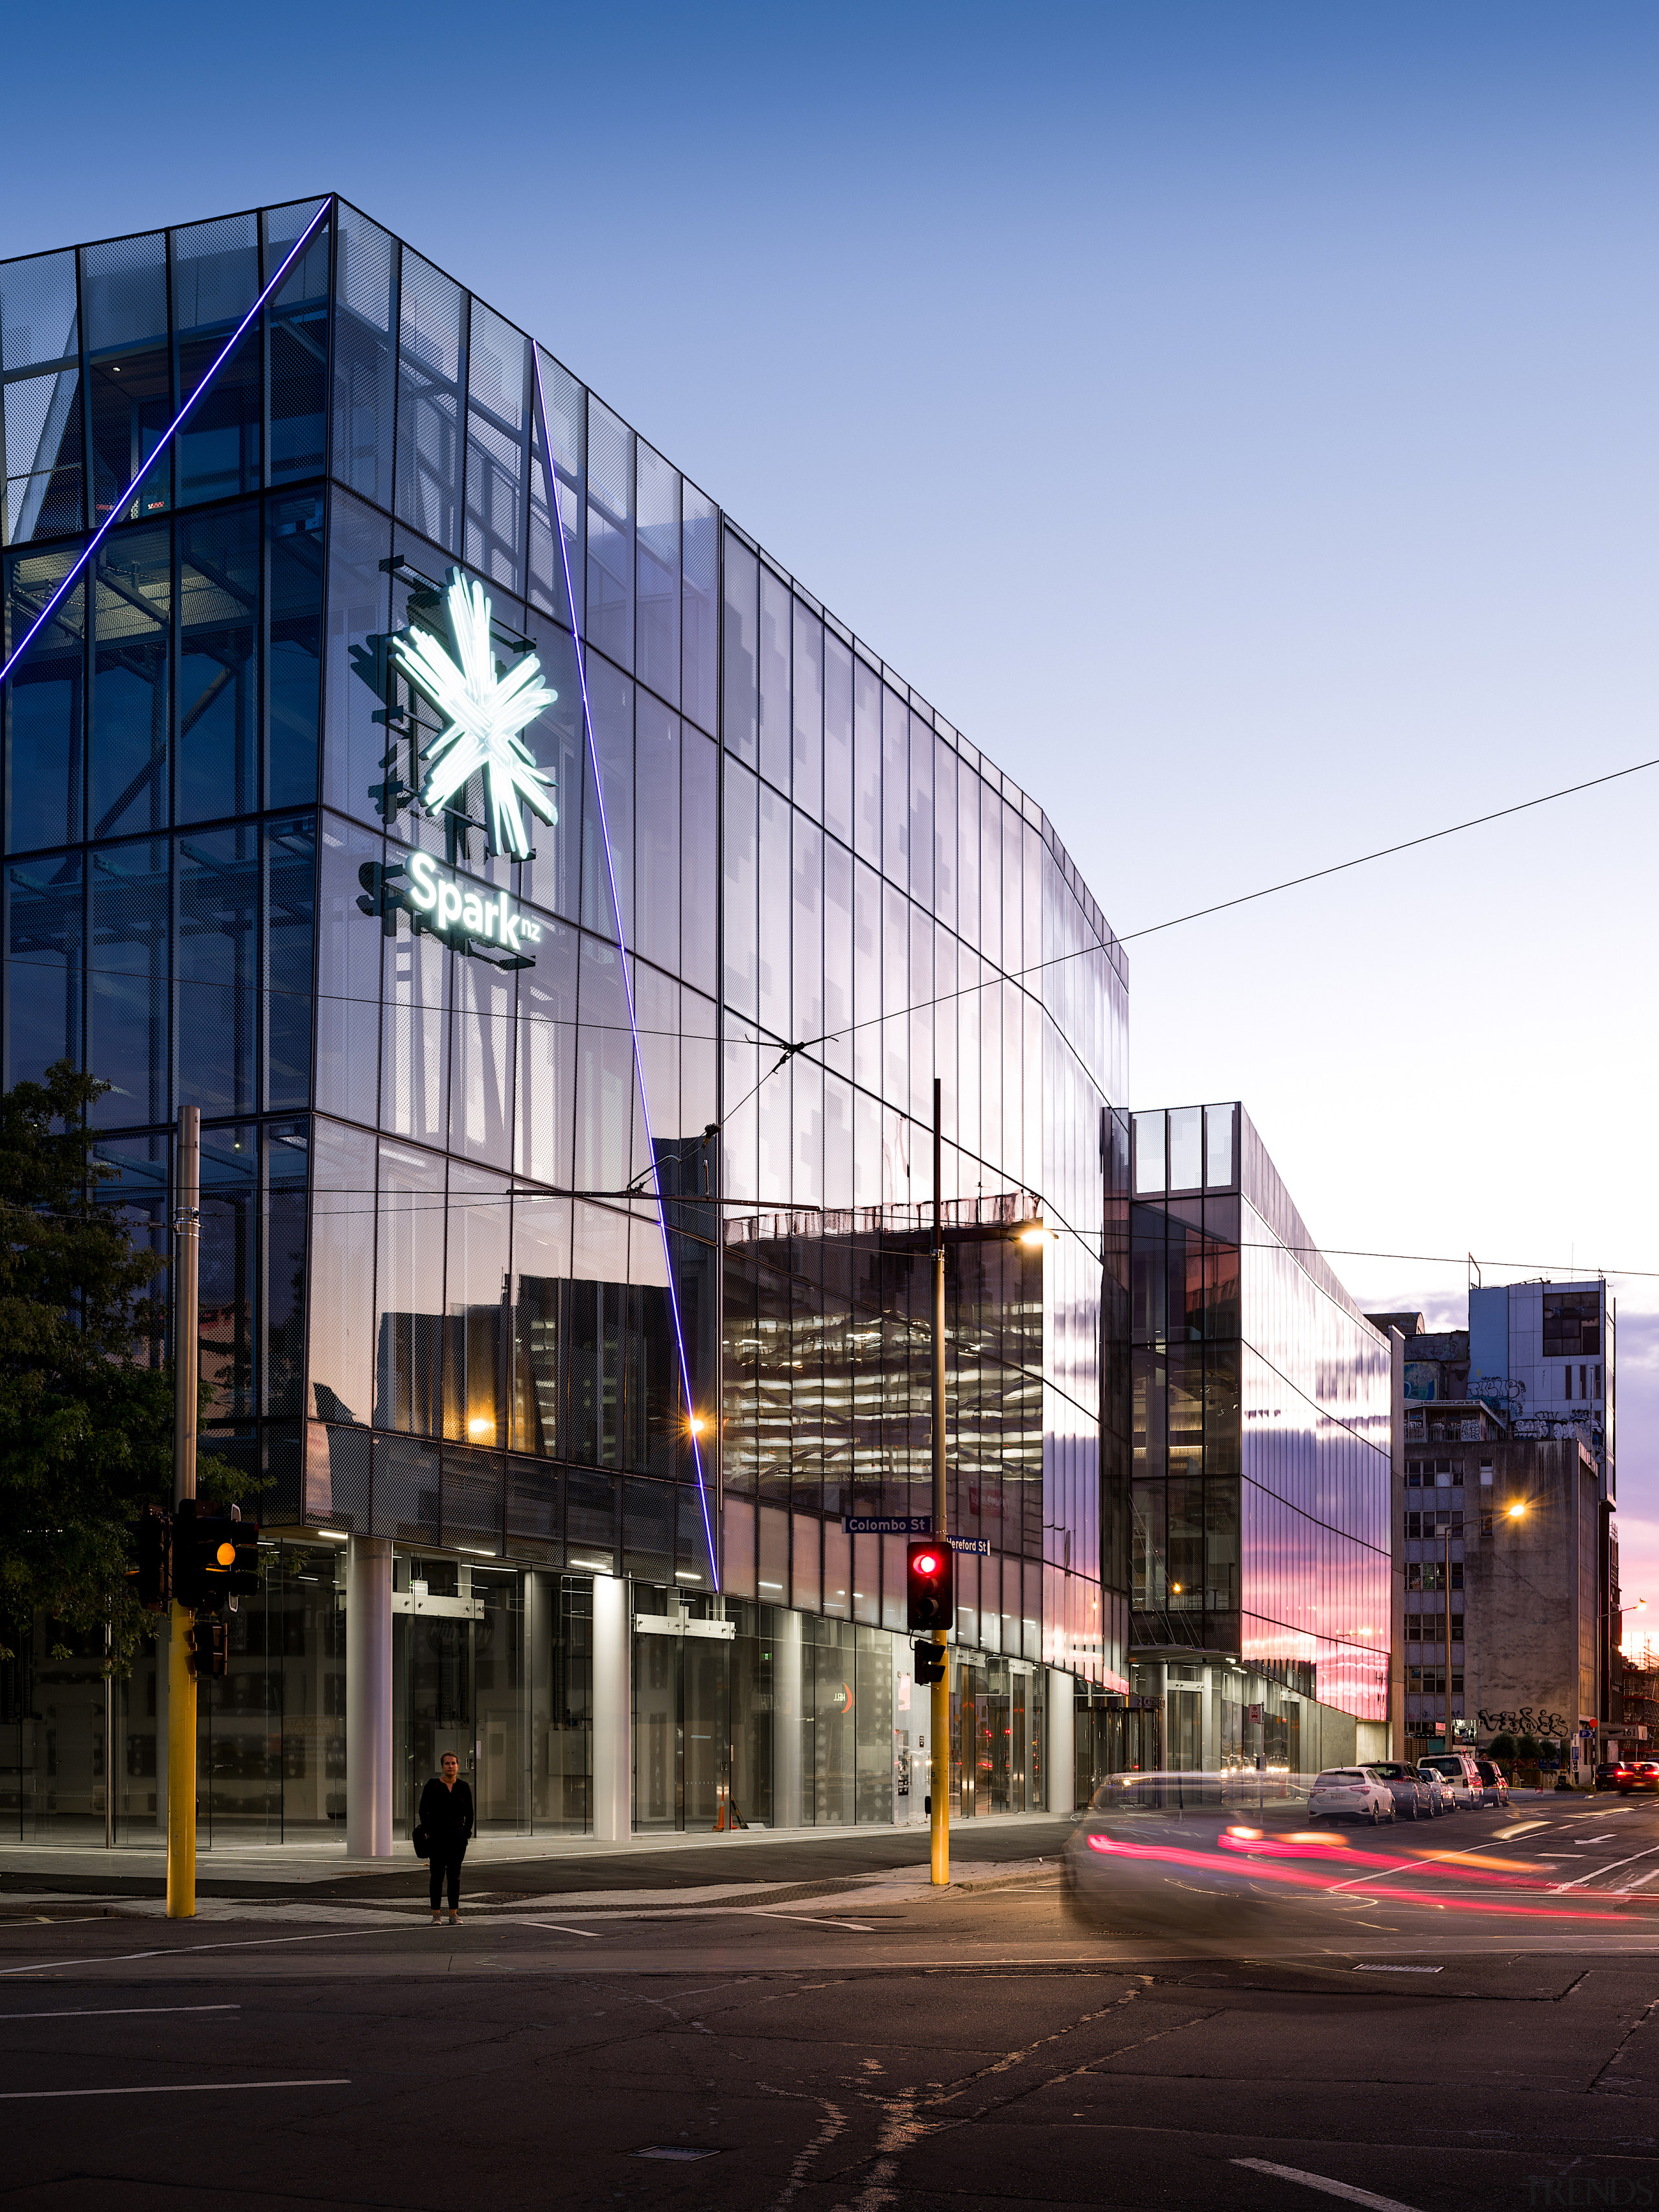 The Spark building is full of surprises –